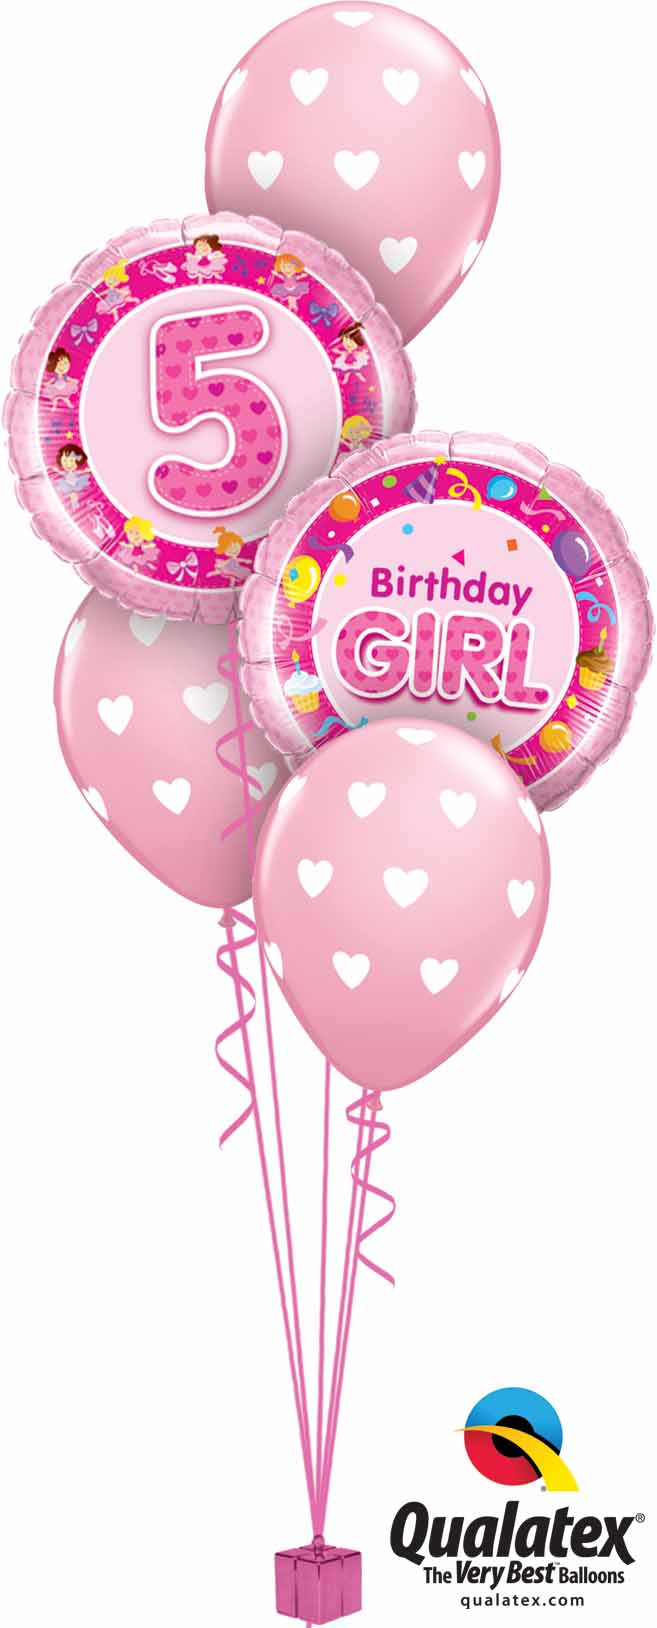 26315 26273 18078 5th Birthday Girl Hearts Classic